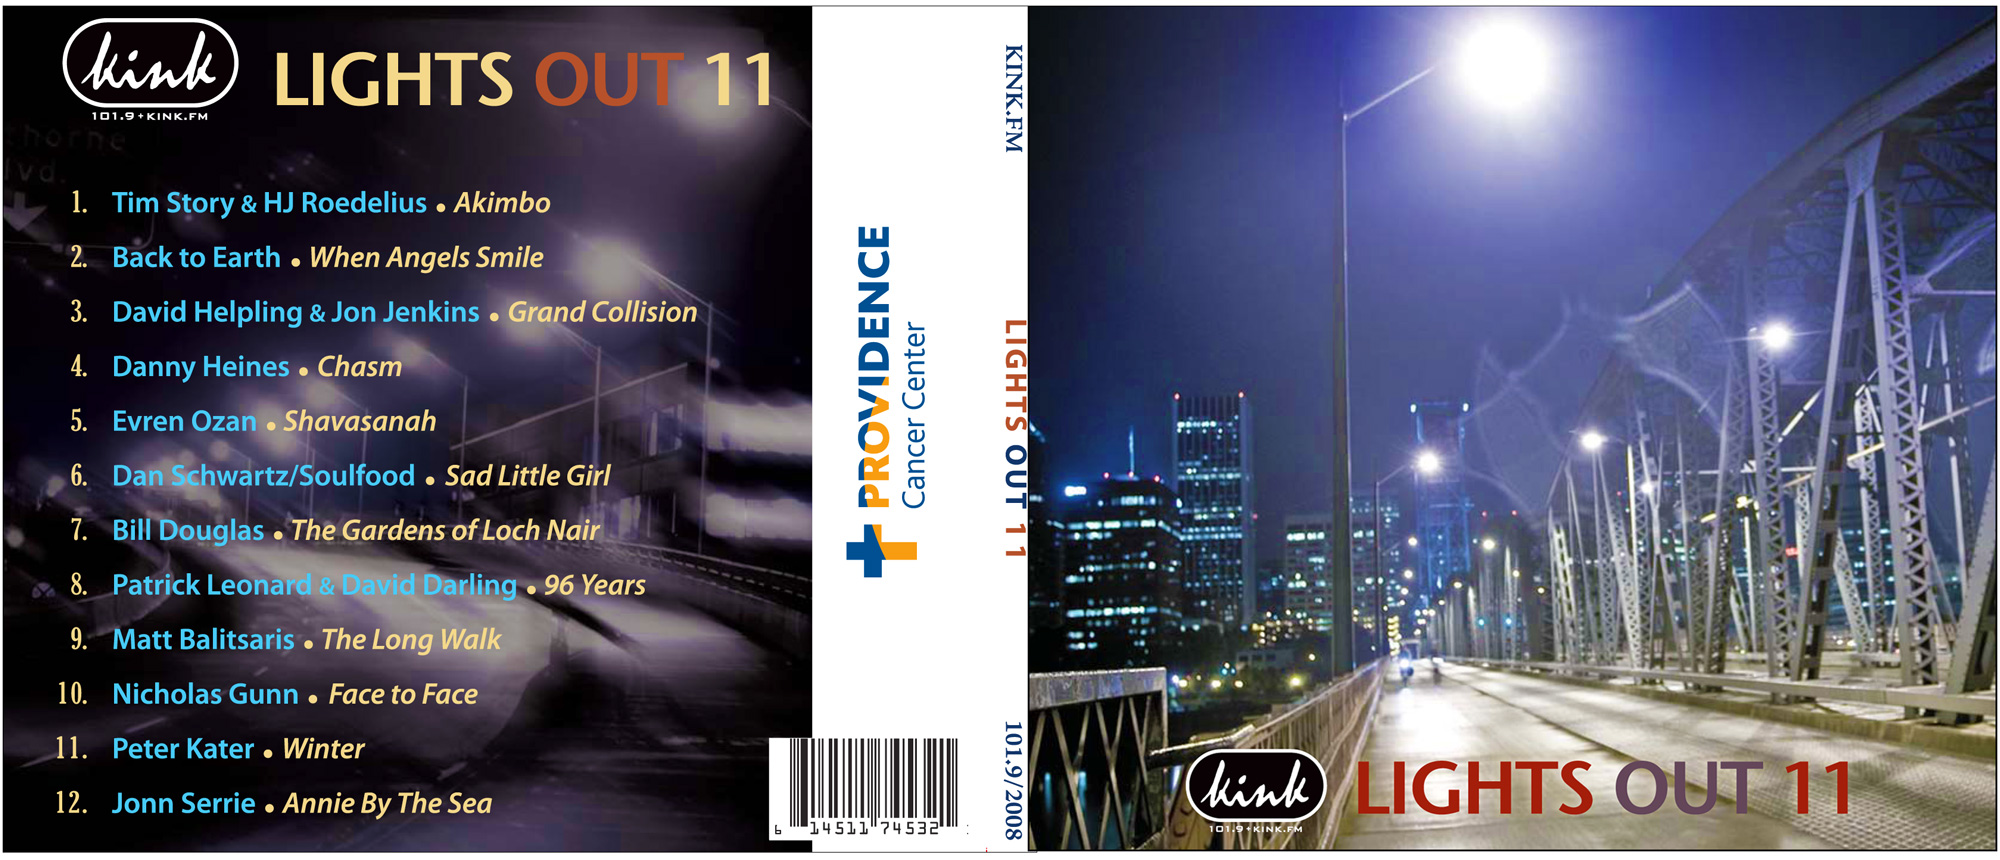 Lights Out 11